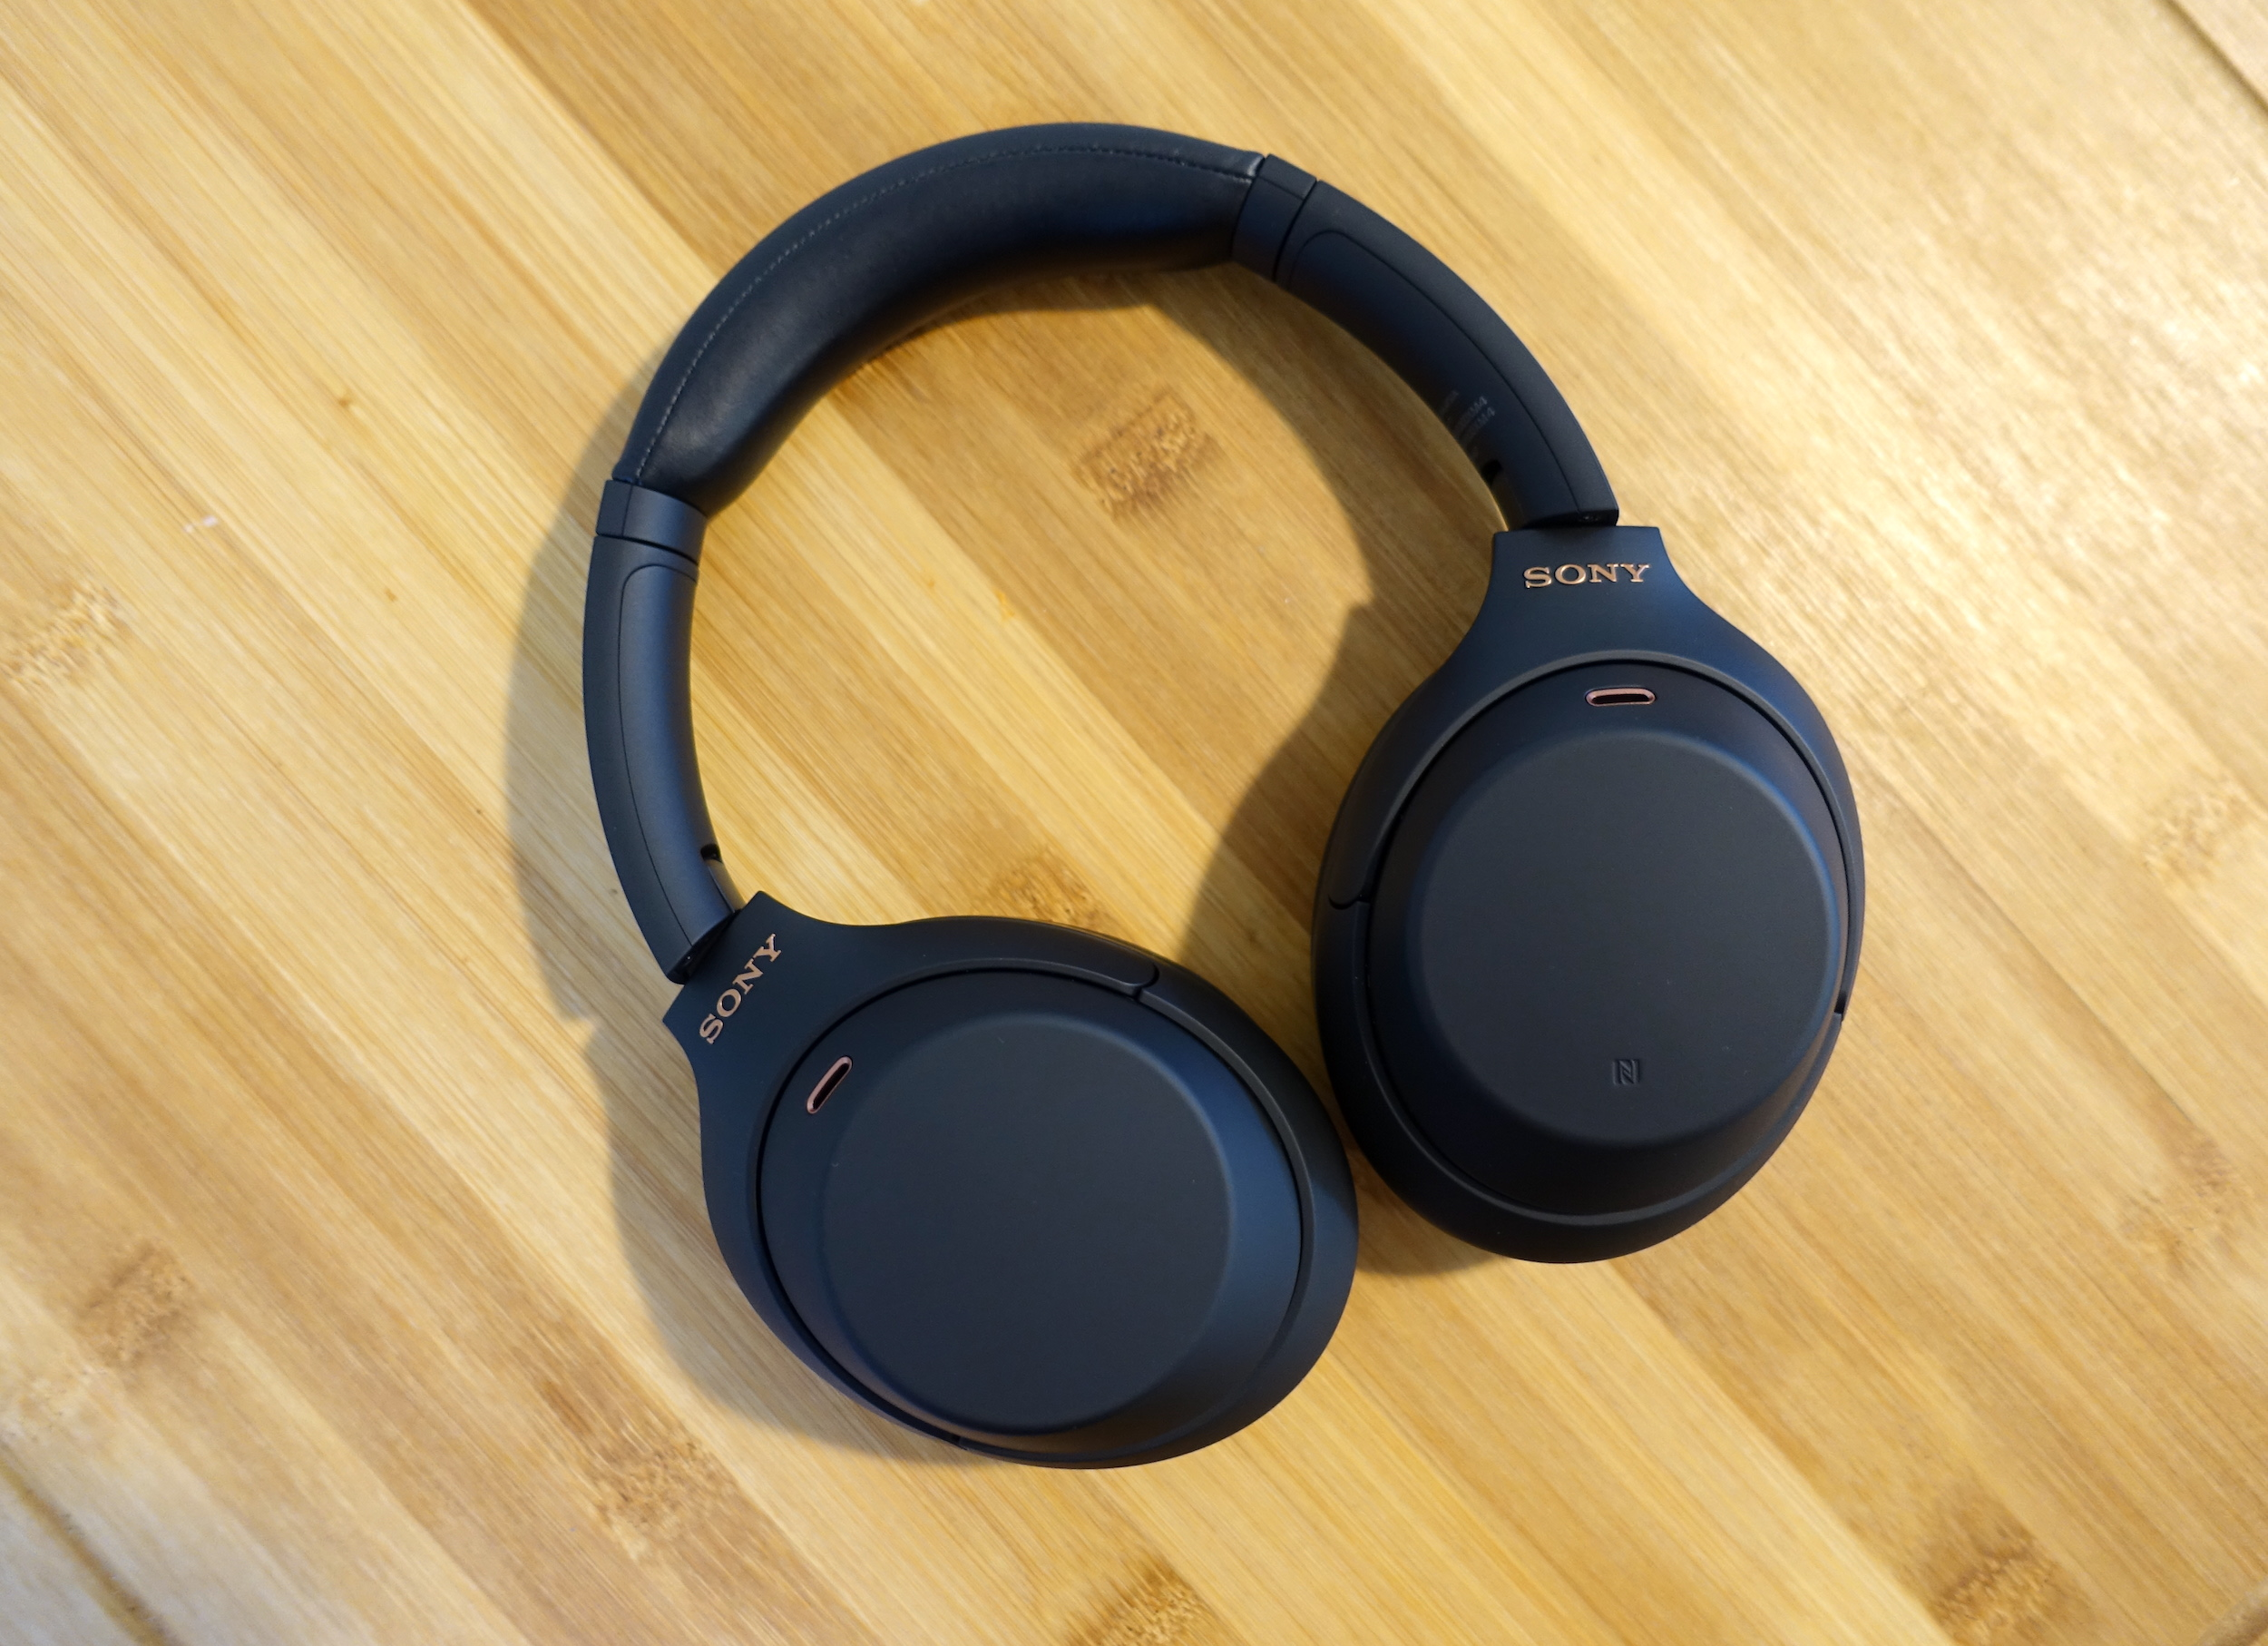 Sony's WH-1000XM4 noise-canceling headphones.